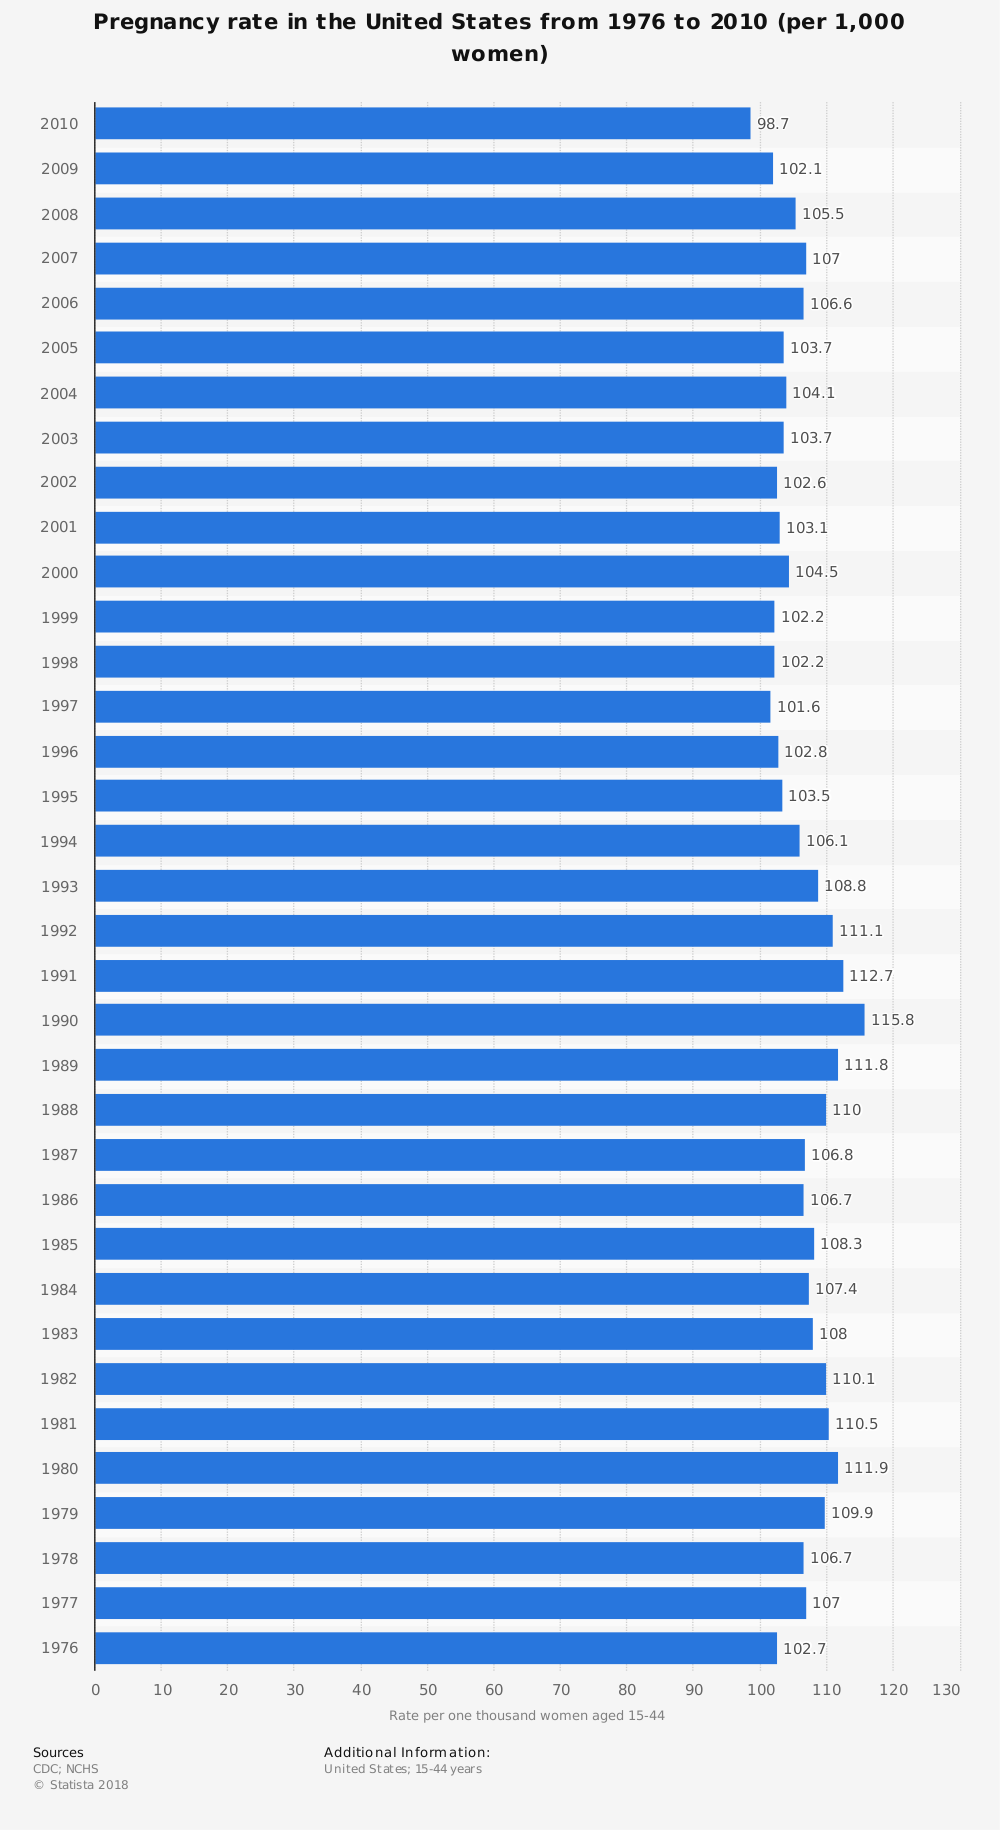 Statistic: Pregnancy rate in the United States from 1976 to 2010 (per 1,000 women) | Statista